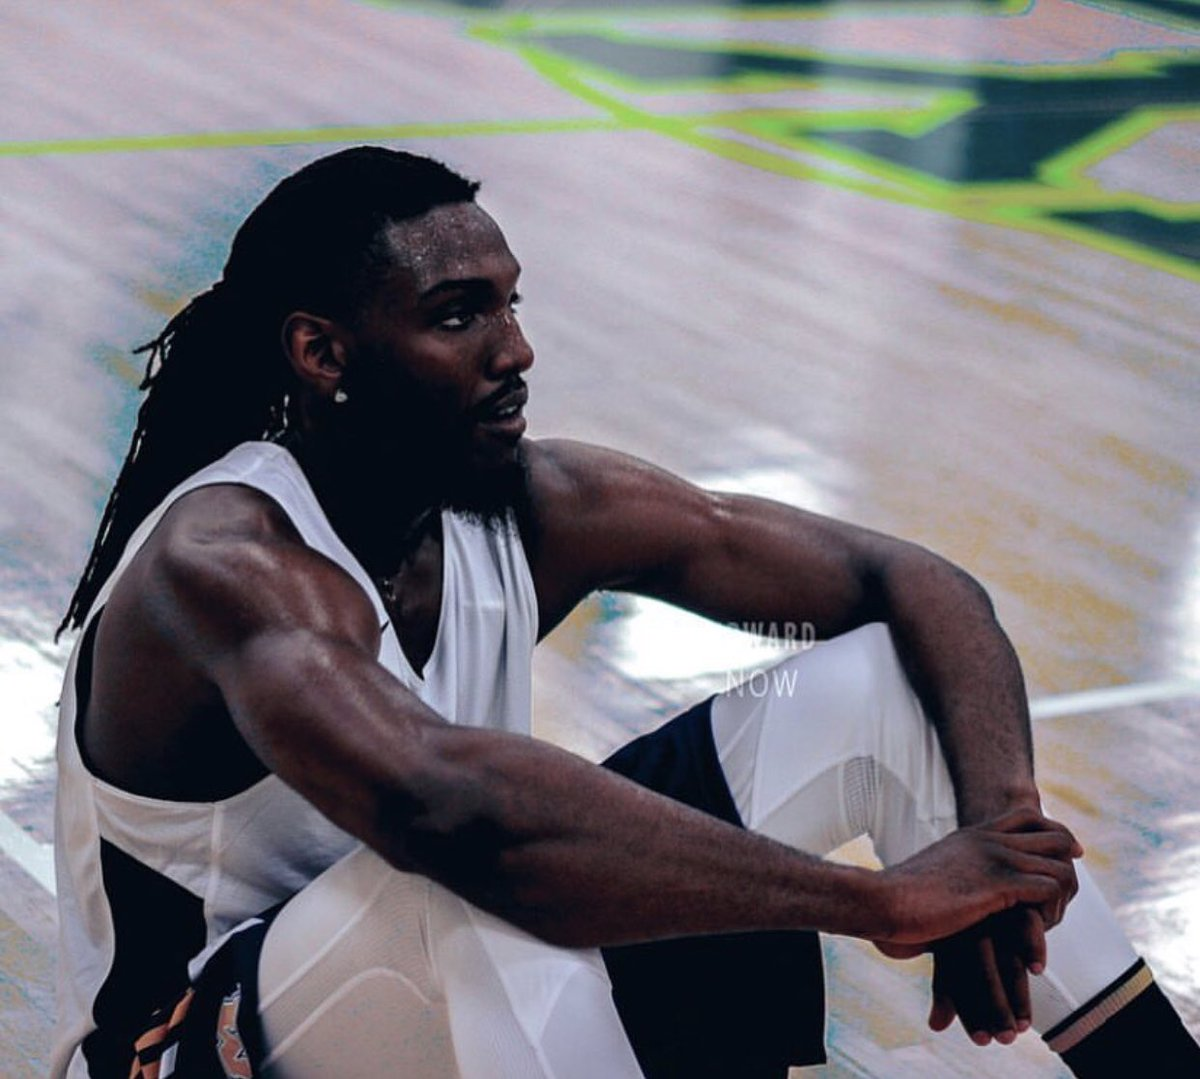 #SUMMERGRIND #MANIMALMINDSET #BUILTBYTOUGHNESS #H.A.T @KennethFaried35